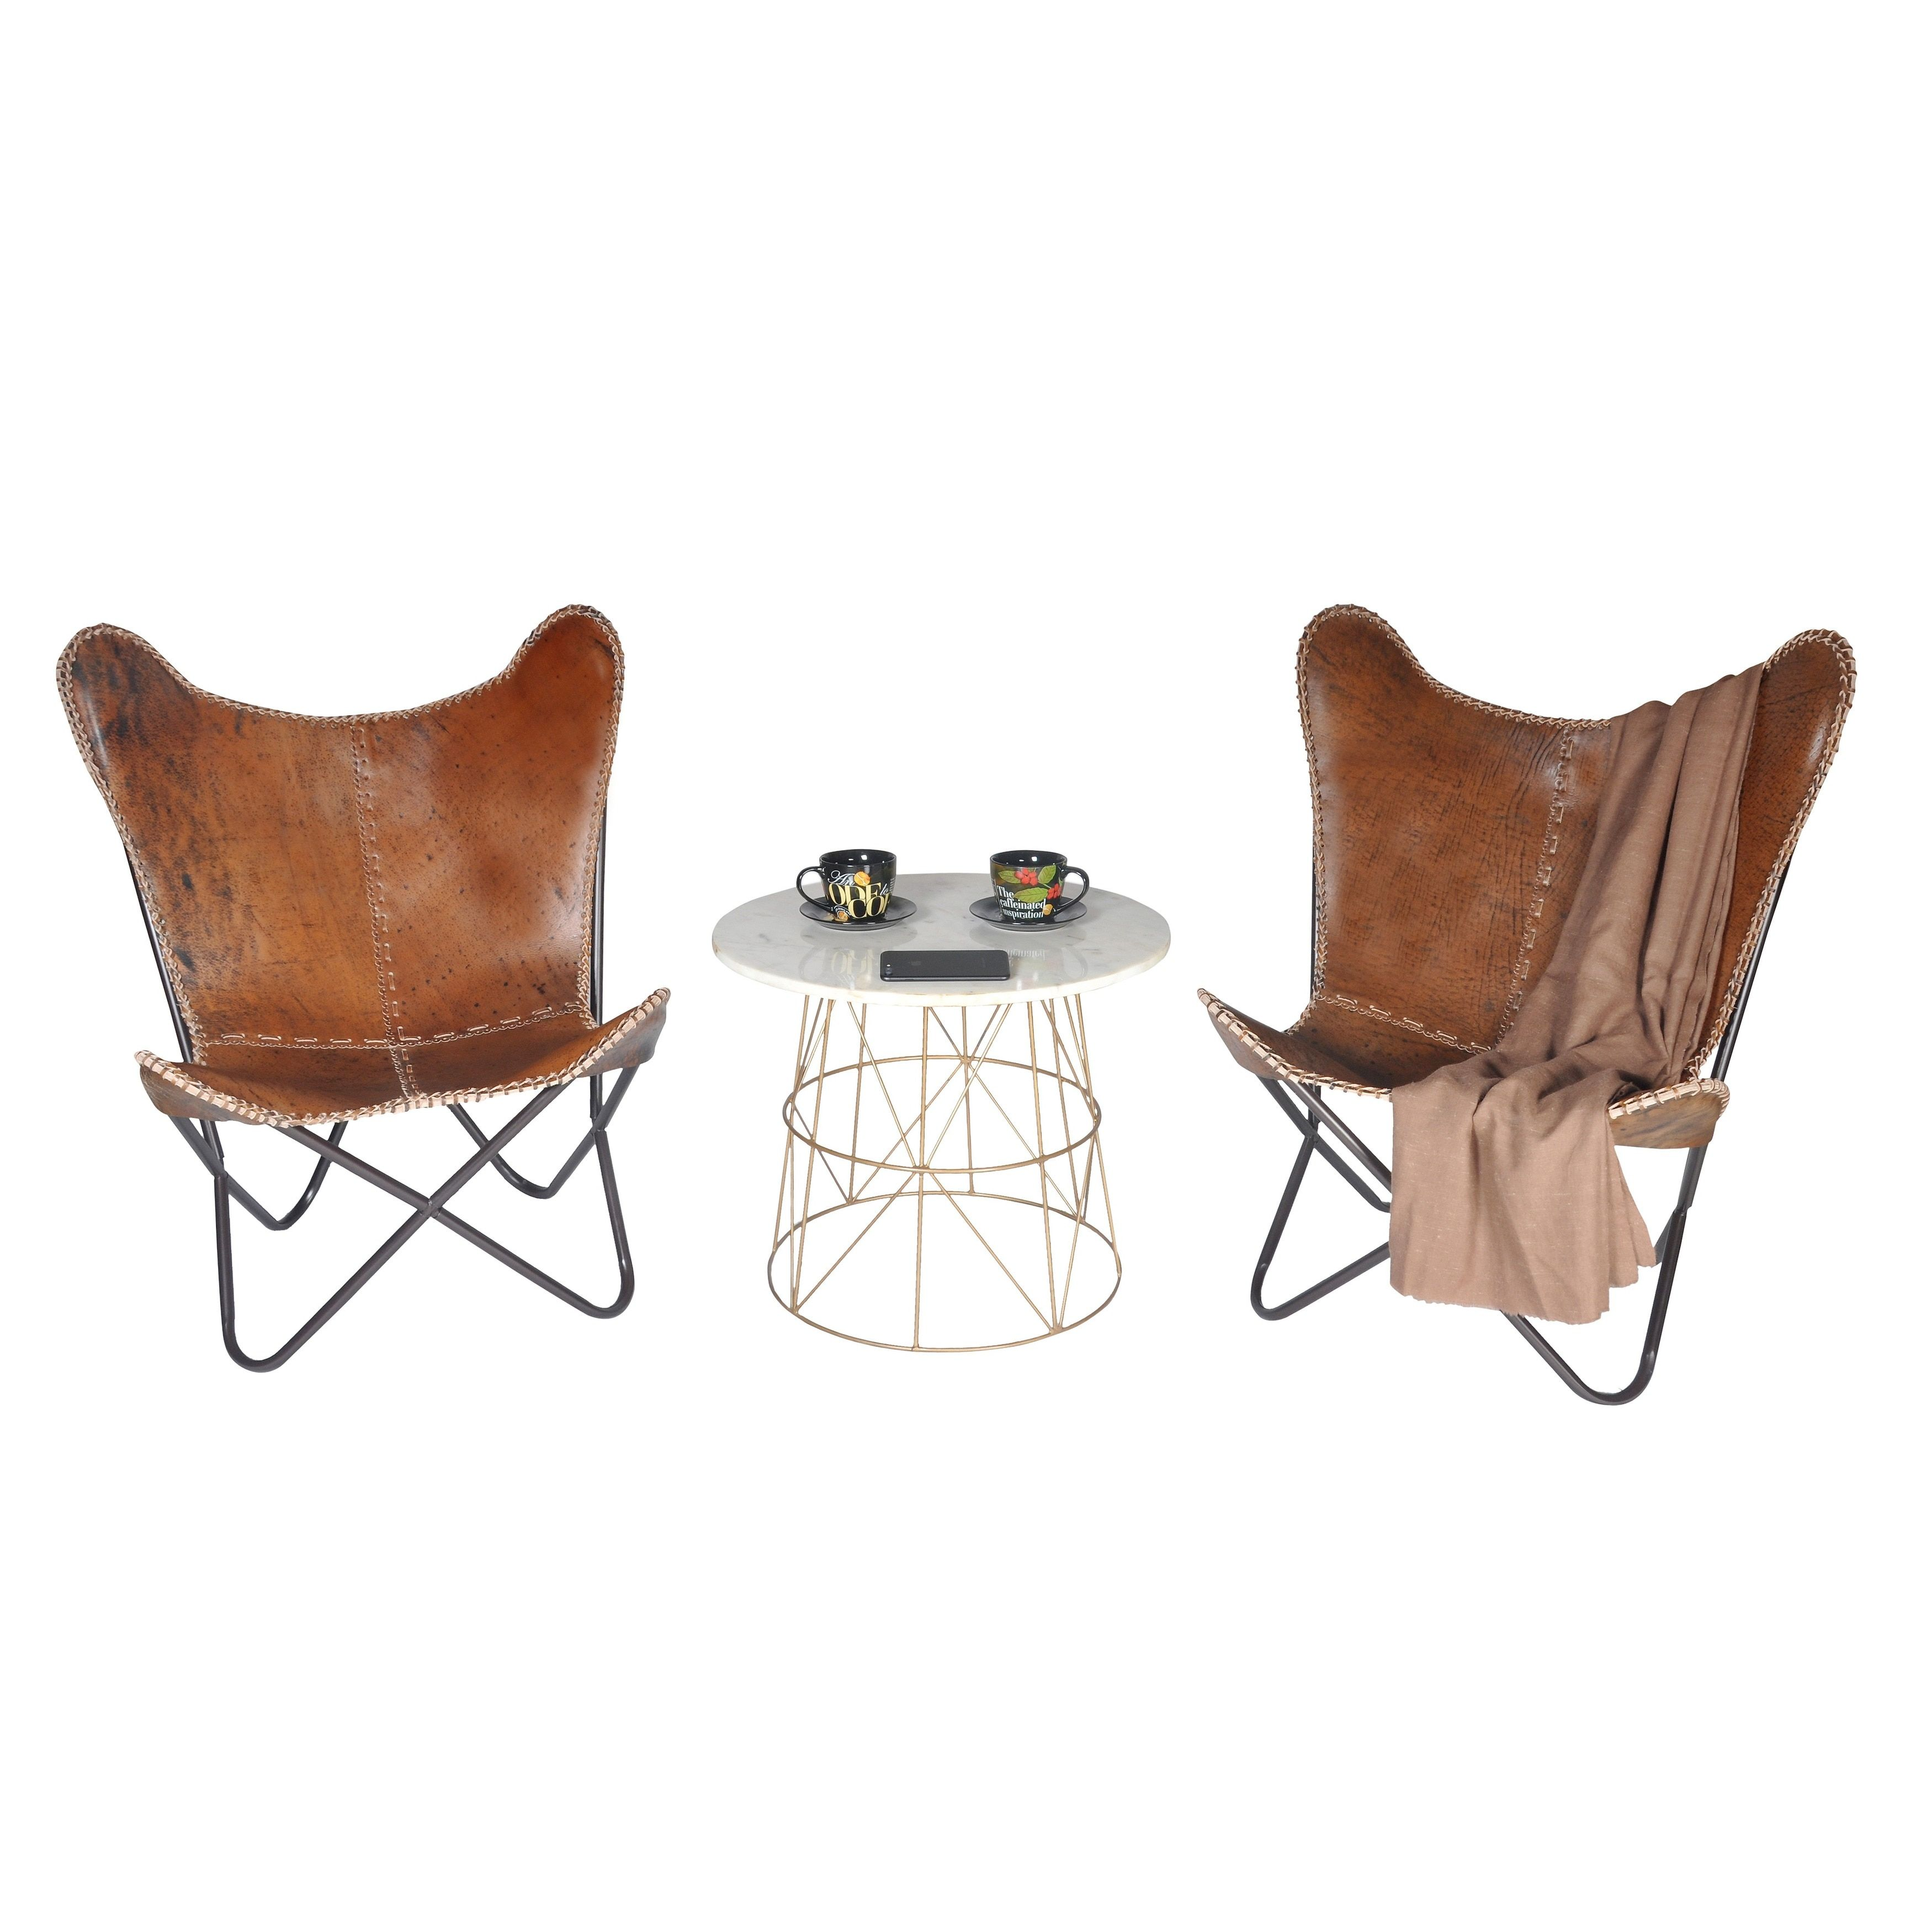 Overstuffed Living Room Chairs Horizon Brown Leather Butterfly Chair By Horizon Stolar